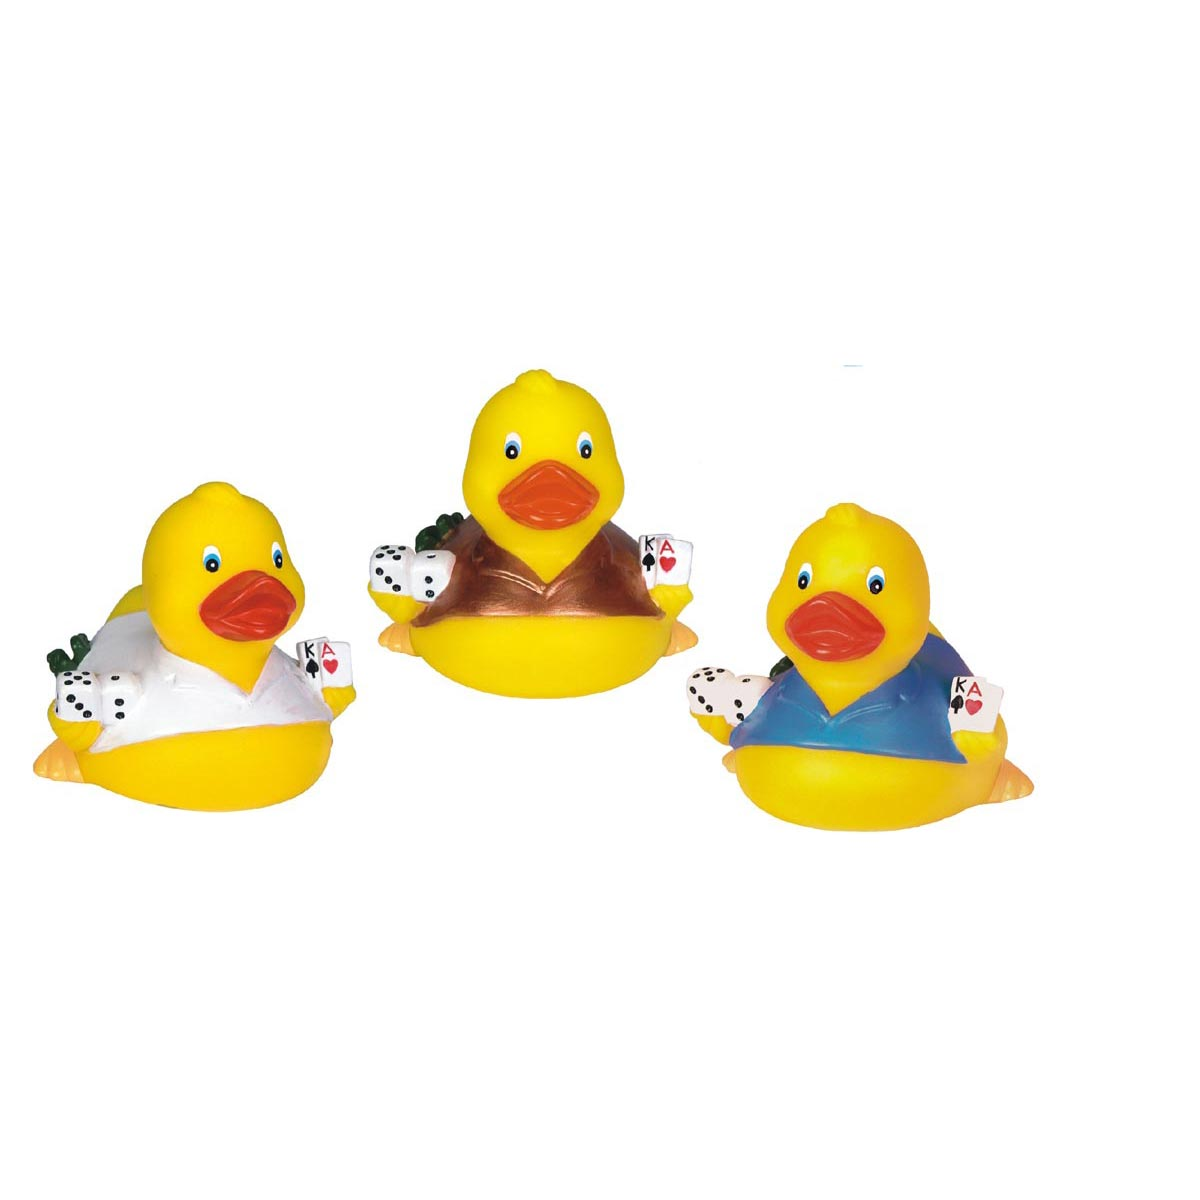 Rubber Casino Duck Toy